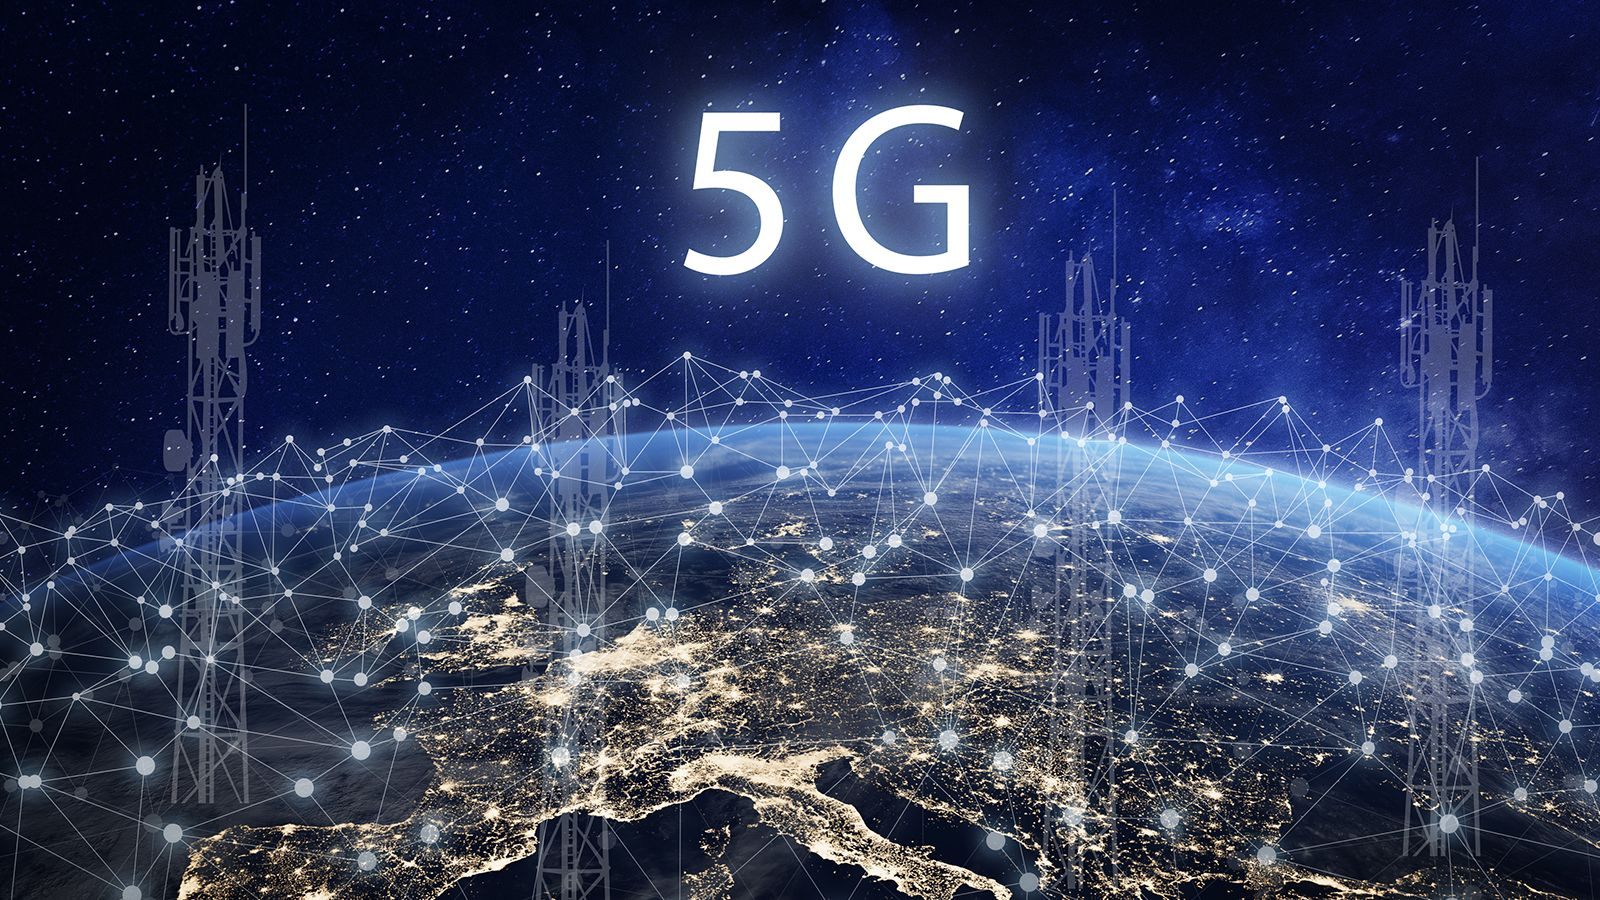 Antenna Module Manufacturer Accelerates 5G mmWave Development by More than 50%